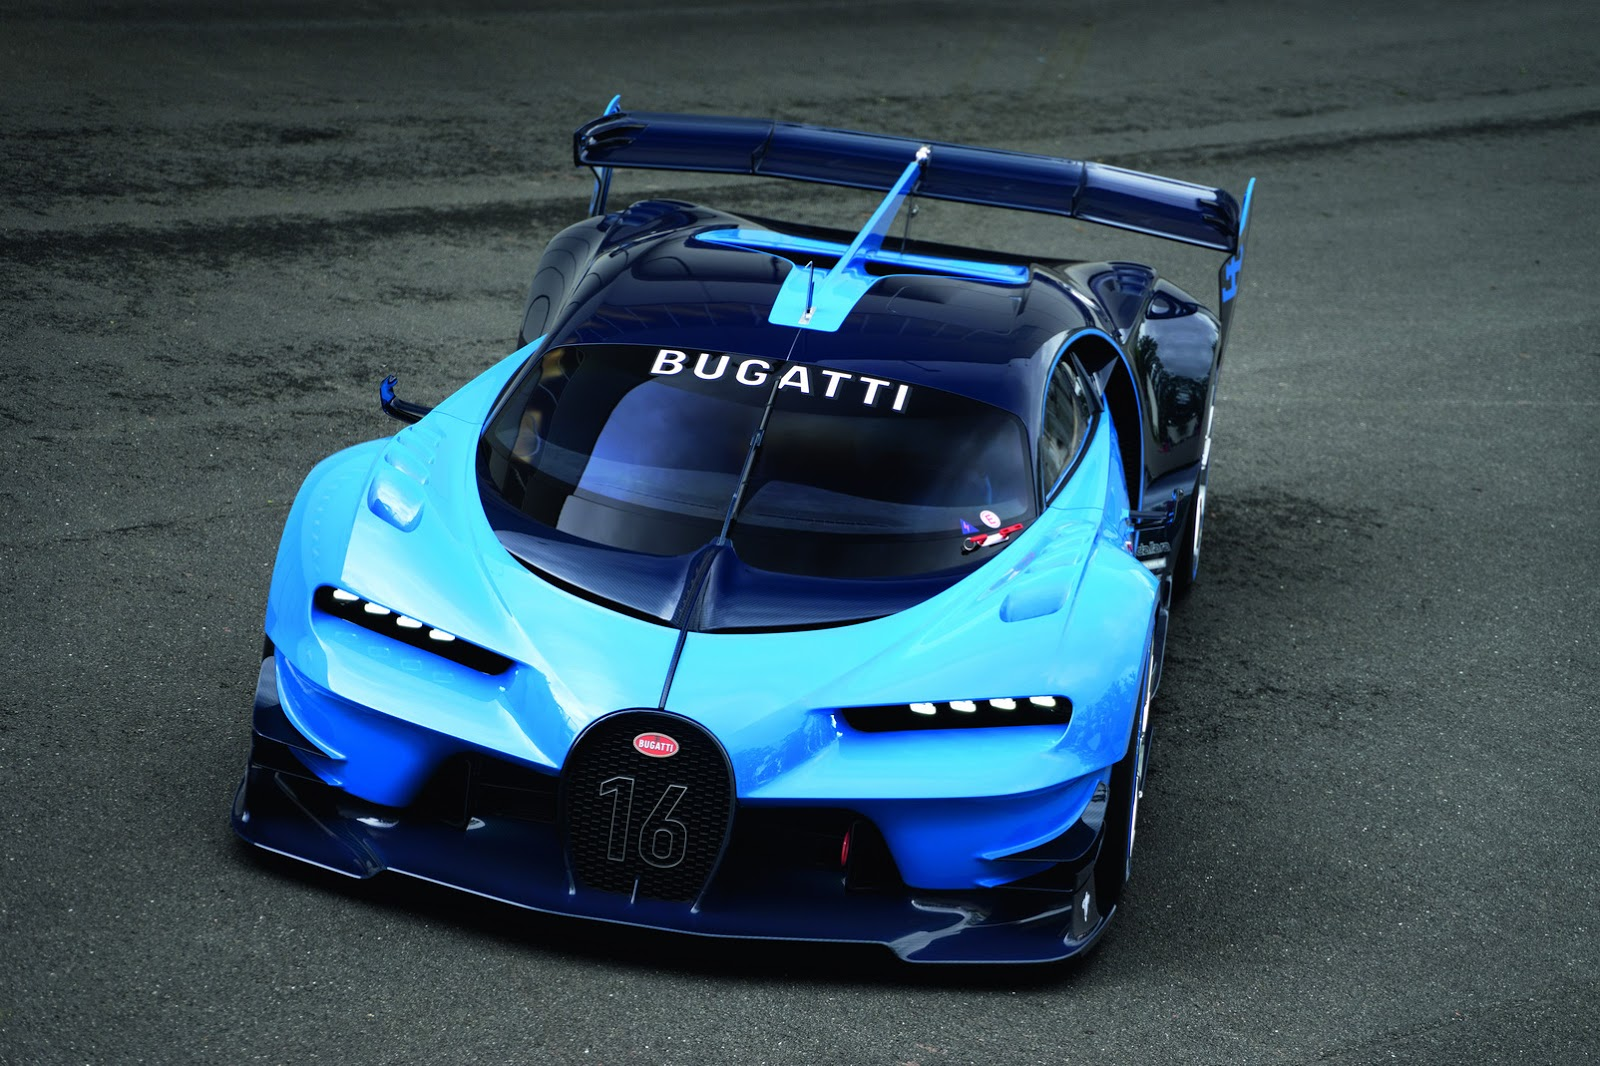 Bugatti Vision Gran Turismo Isn't the Veyron Successor We're Looking on subaru viziv gt vision, bmw gt vision, mitsubishi gt vision, renault alpine gt vision,